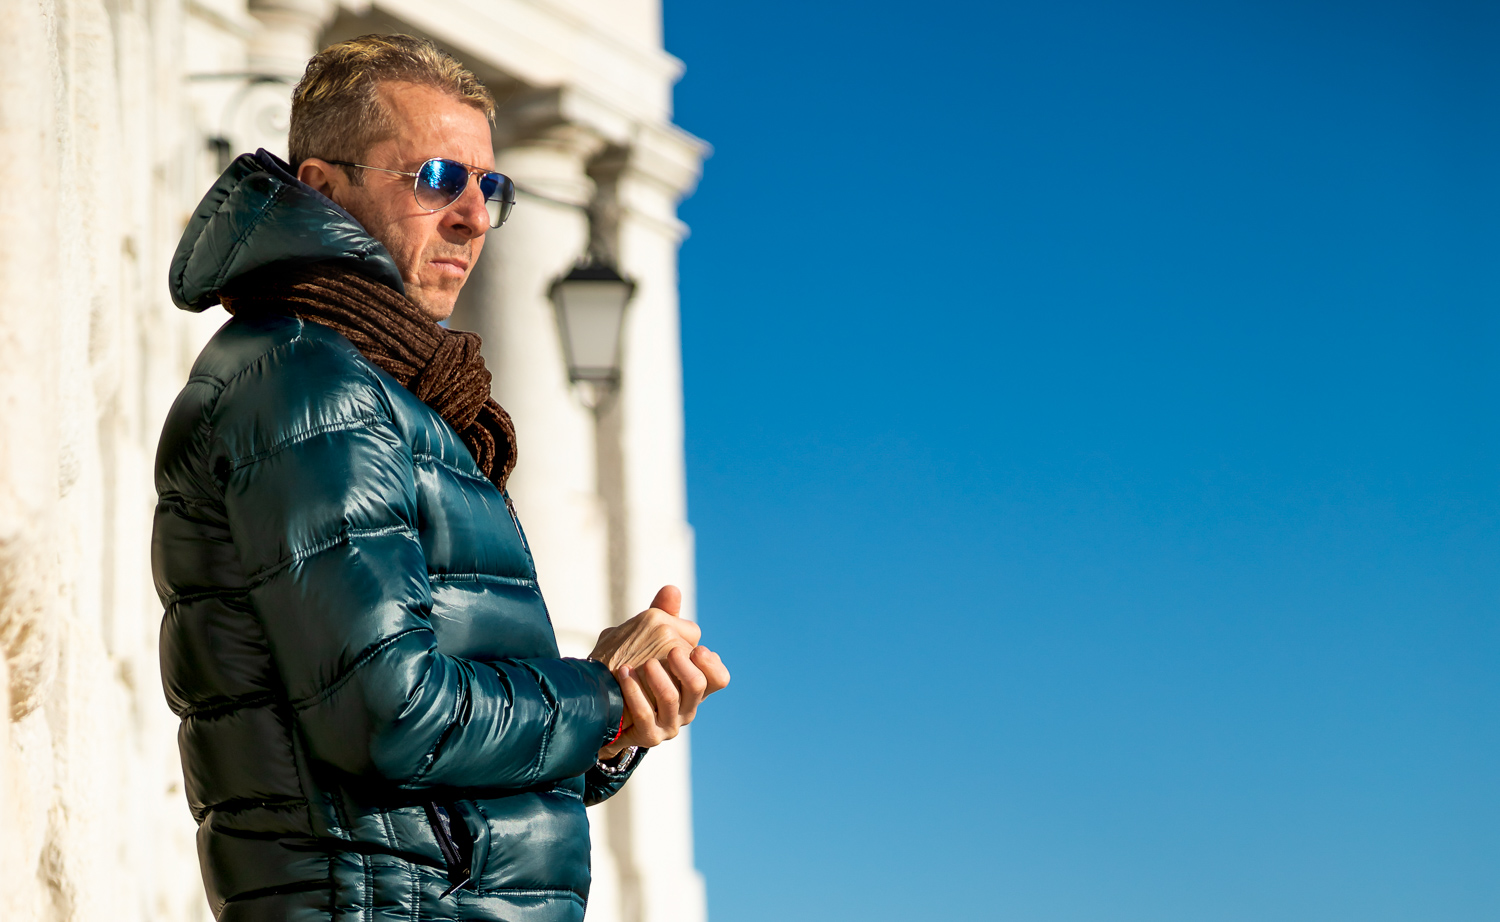 Candid portrait of Italian Man in Venice on one beautiful day